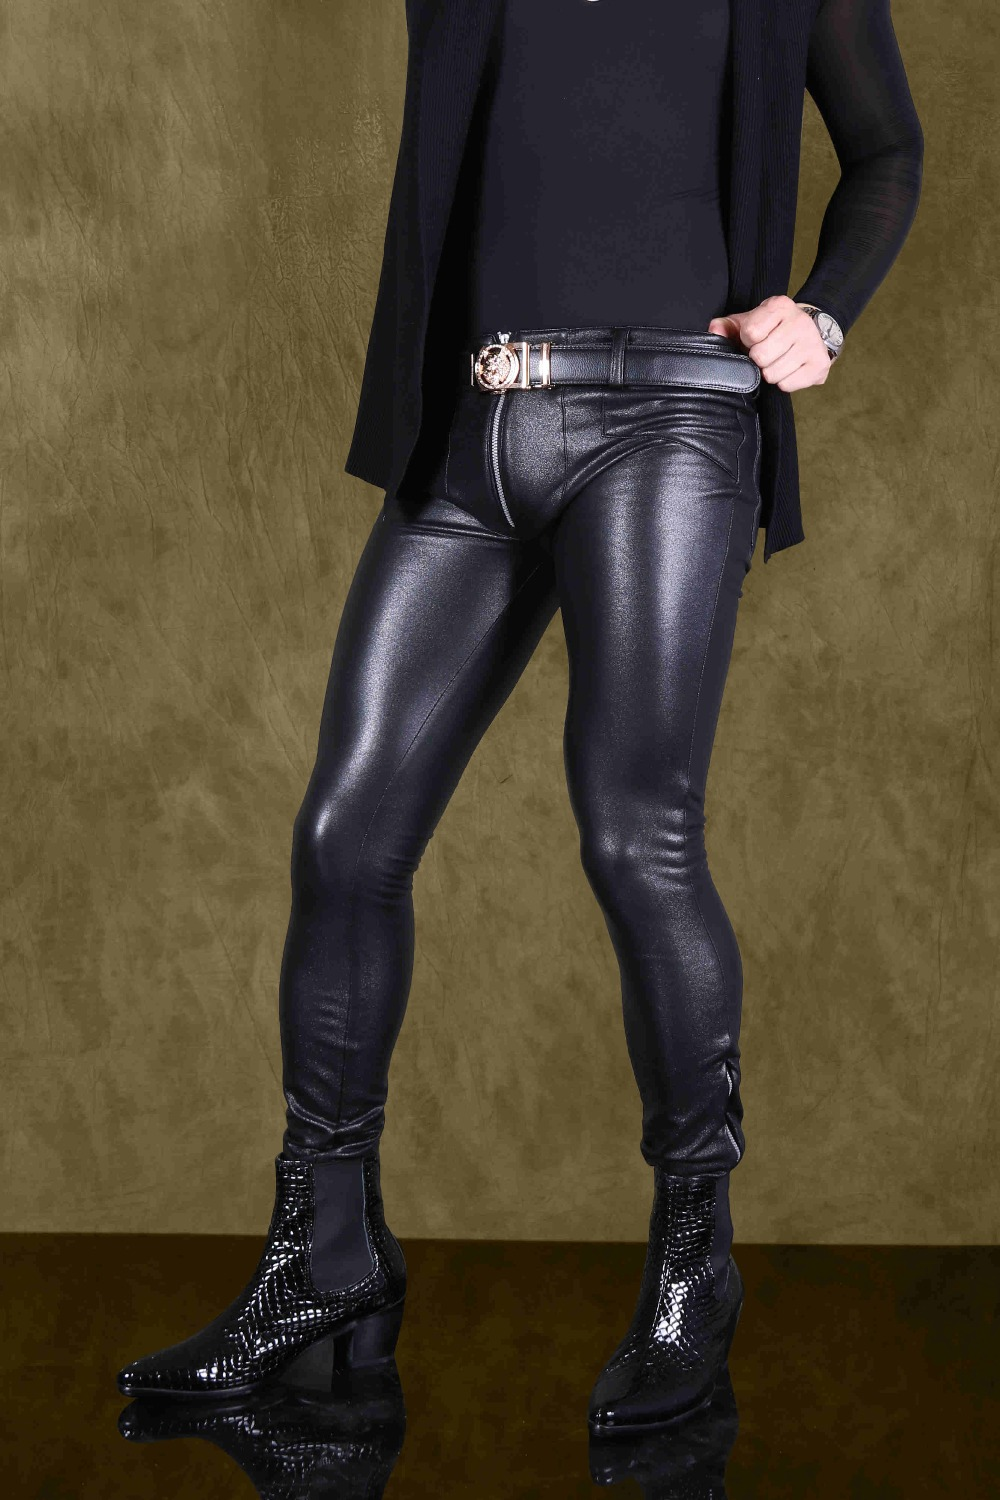 Cool Mens High Elastic Leather Pants Sexy Fashion Tight